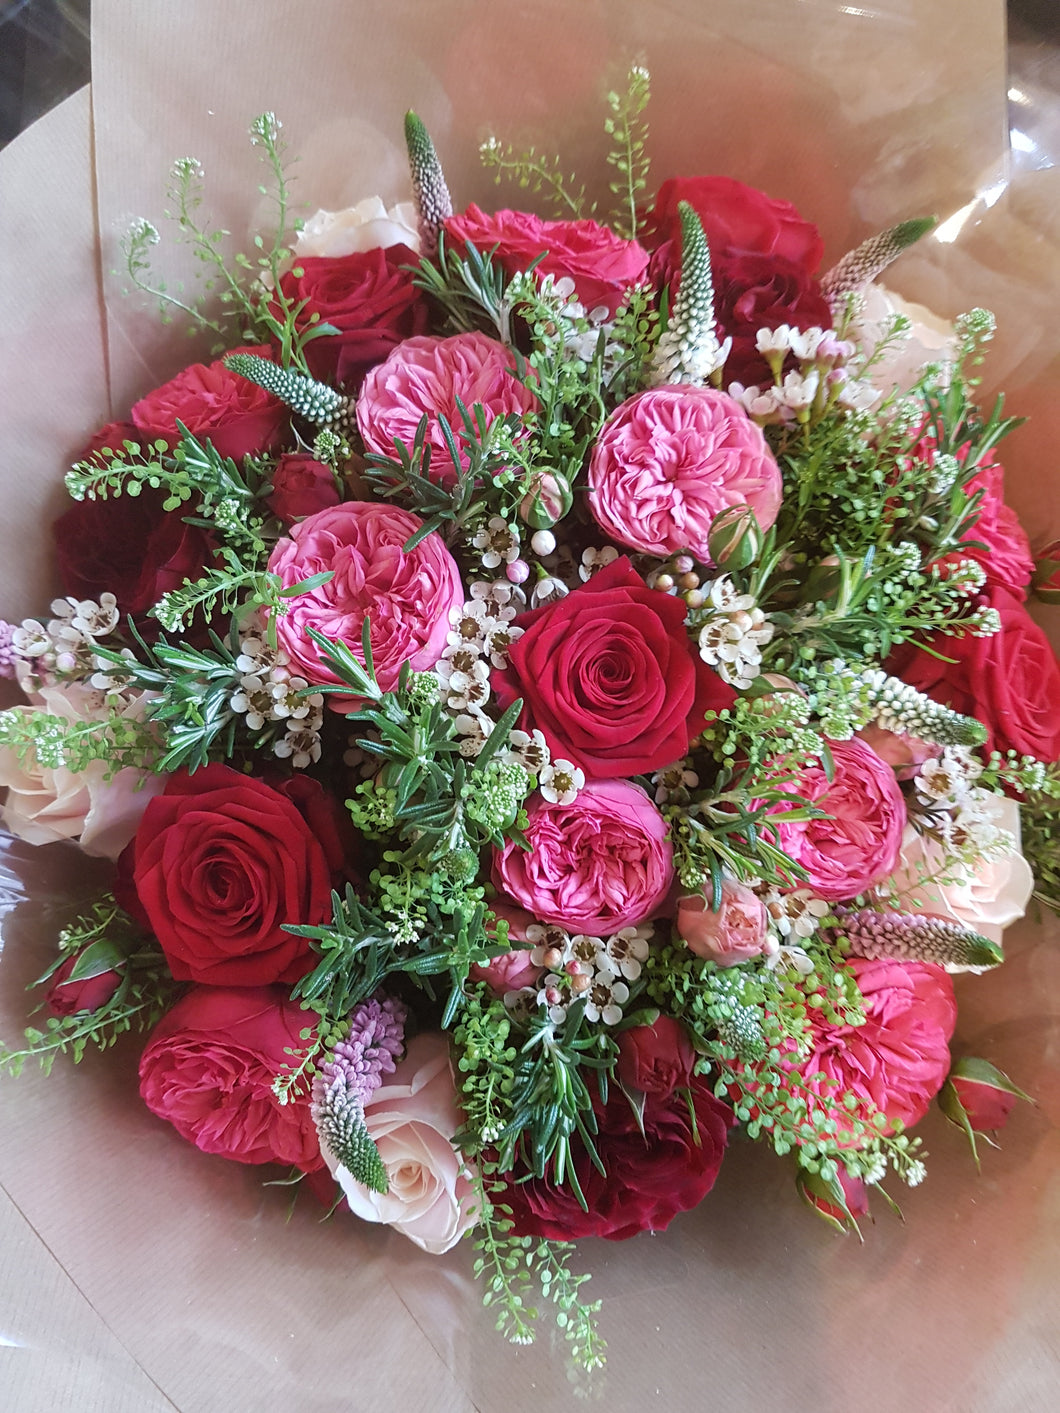 Flower Delivery Alderley Edge, Congleton, Macclesfield, Wilmslow, Knutsford, Cheshire, Staffordshire, Marton, Chelford, Florist, Bouquet, Flower Delivery, UK Delivery, National Flower Delivery, Biddulph, North West Flowers, Mottram St Andrew Flowers